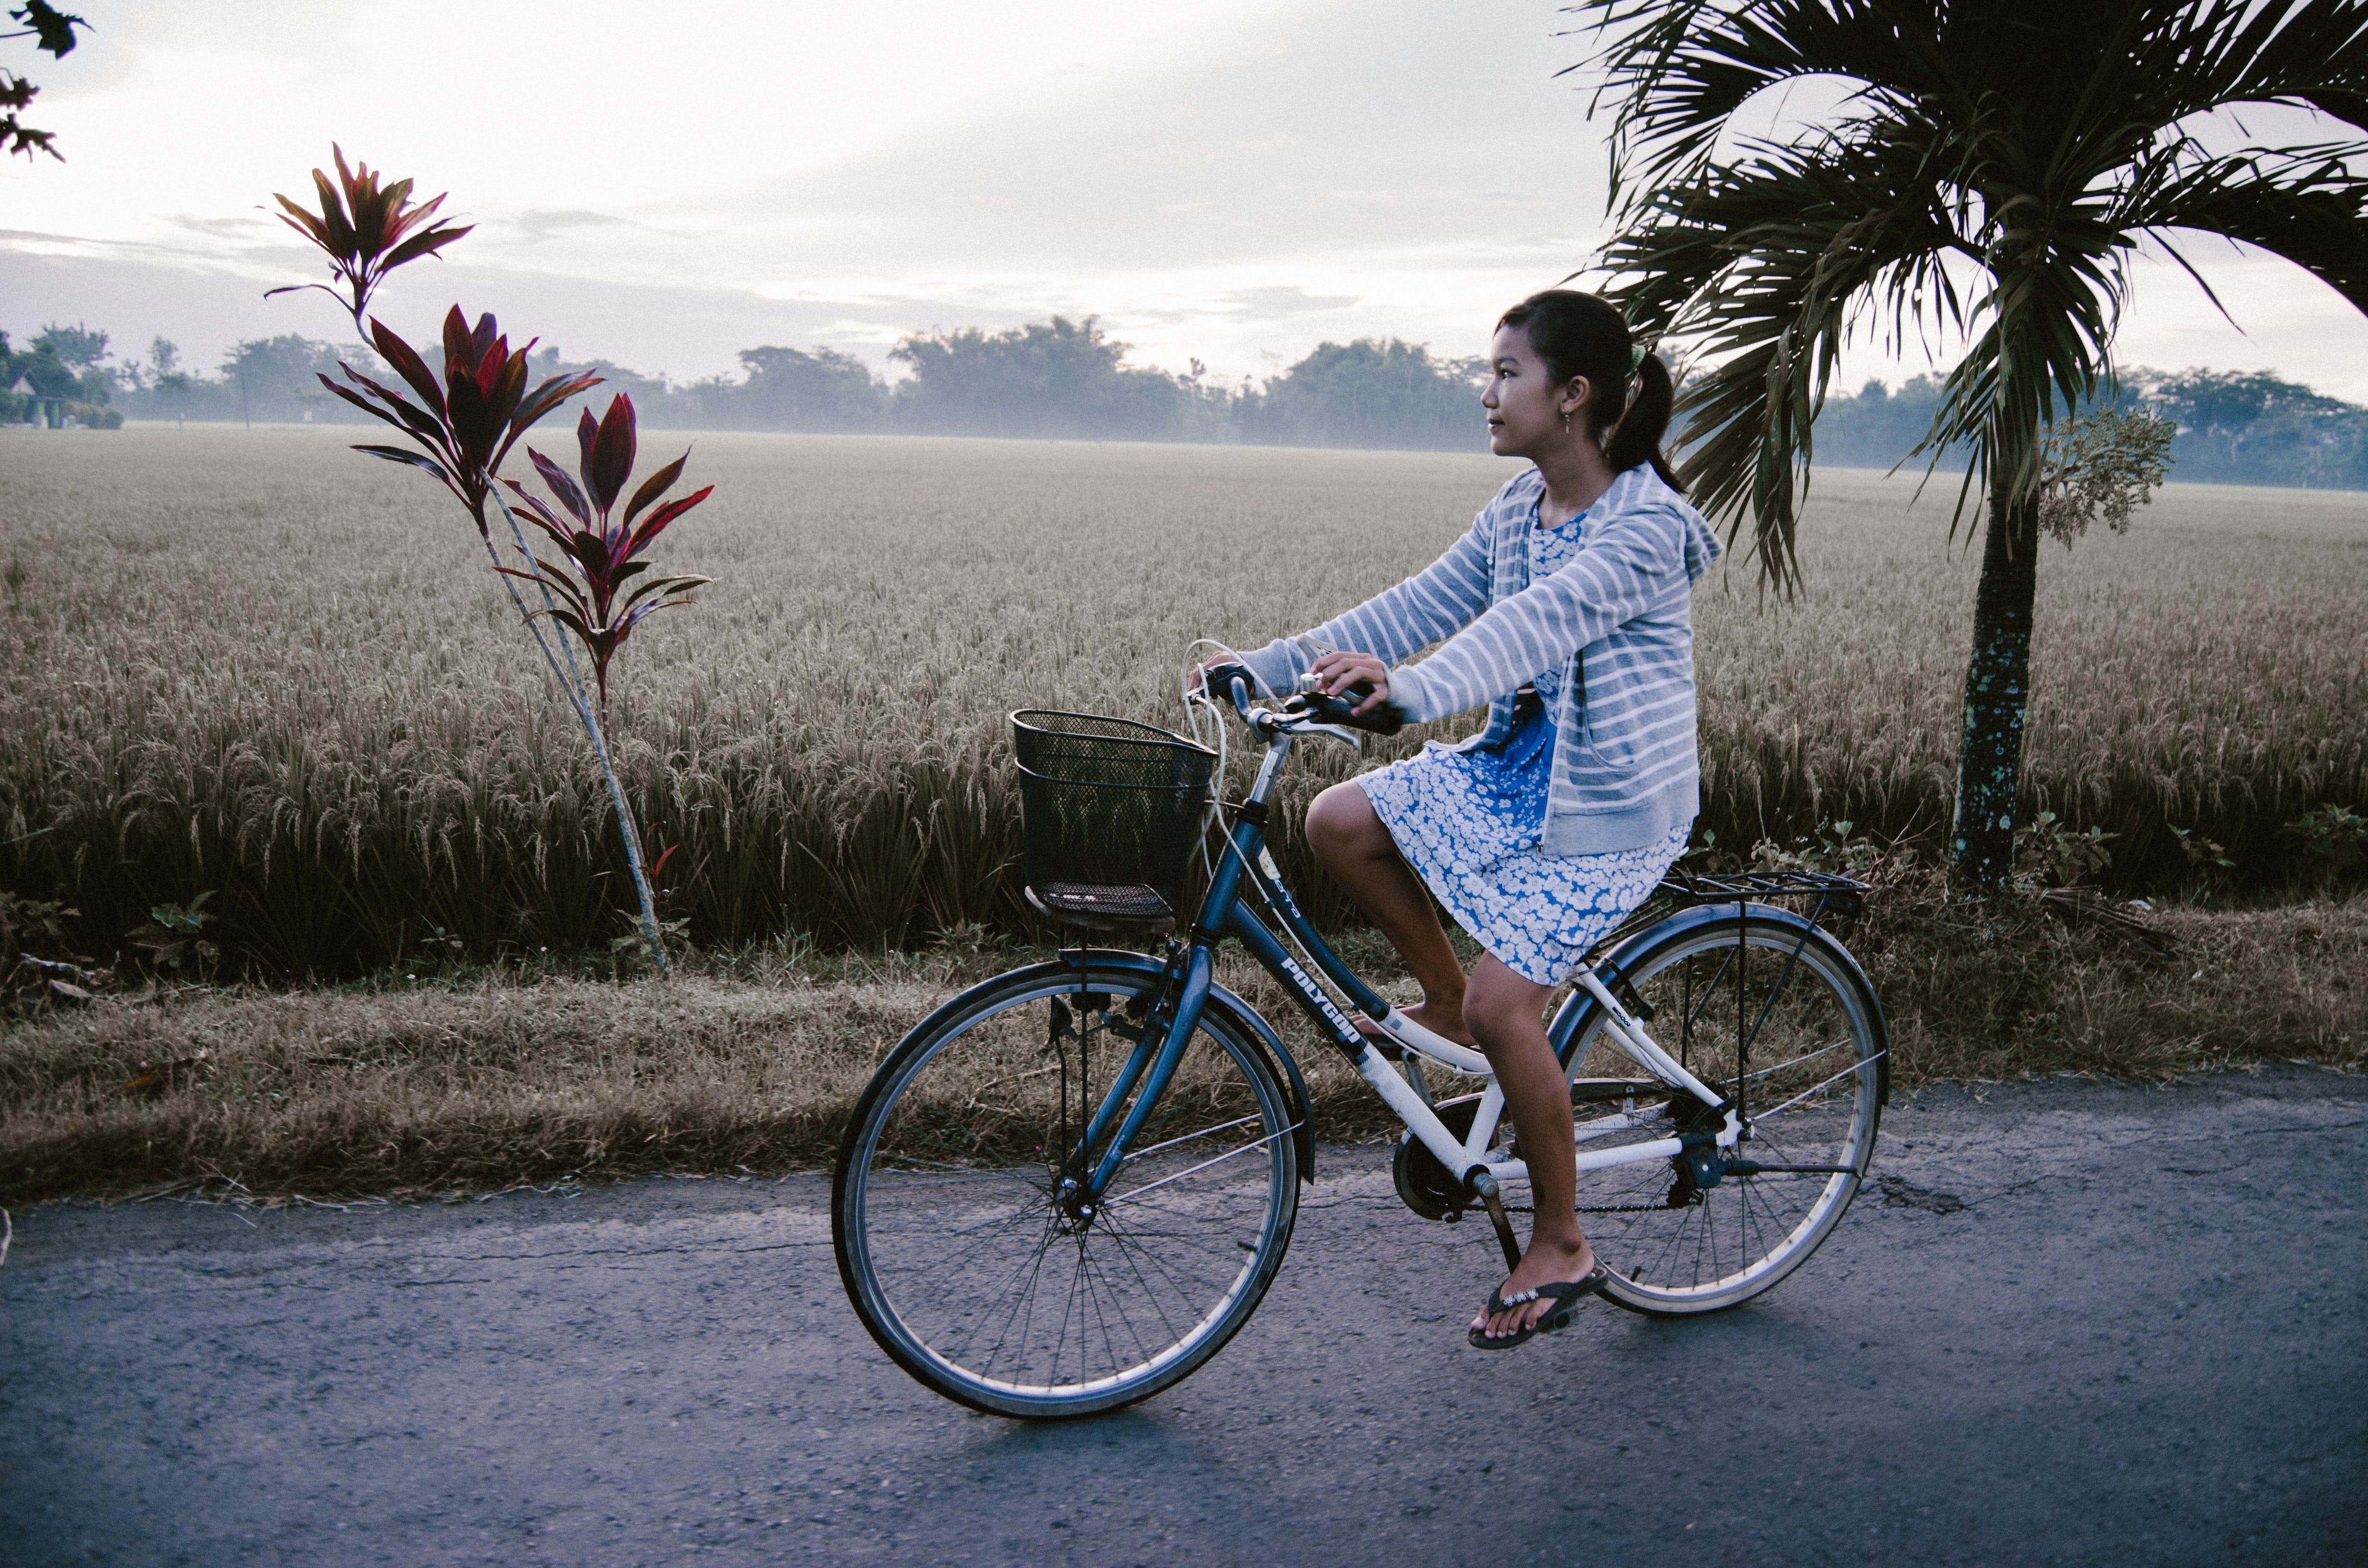 Woman Riding on Blue and White Bicycle